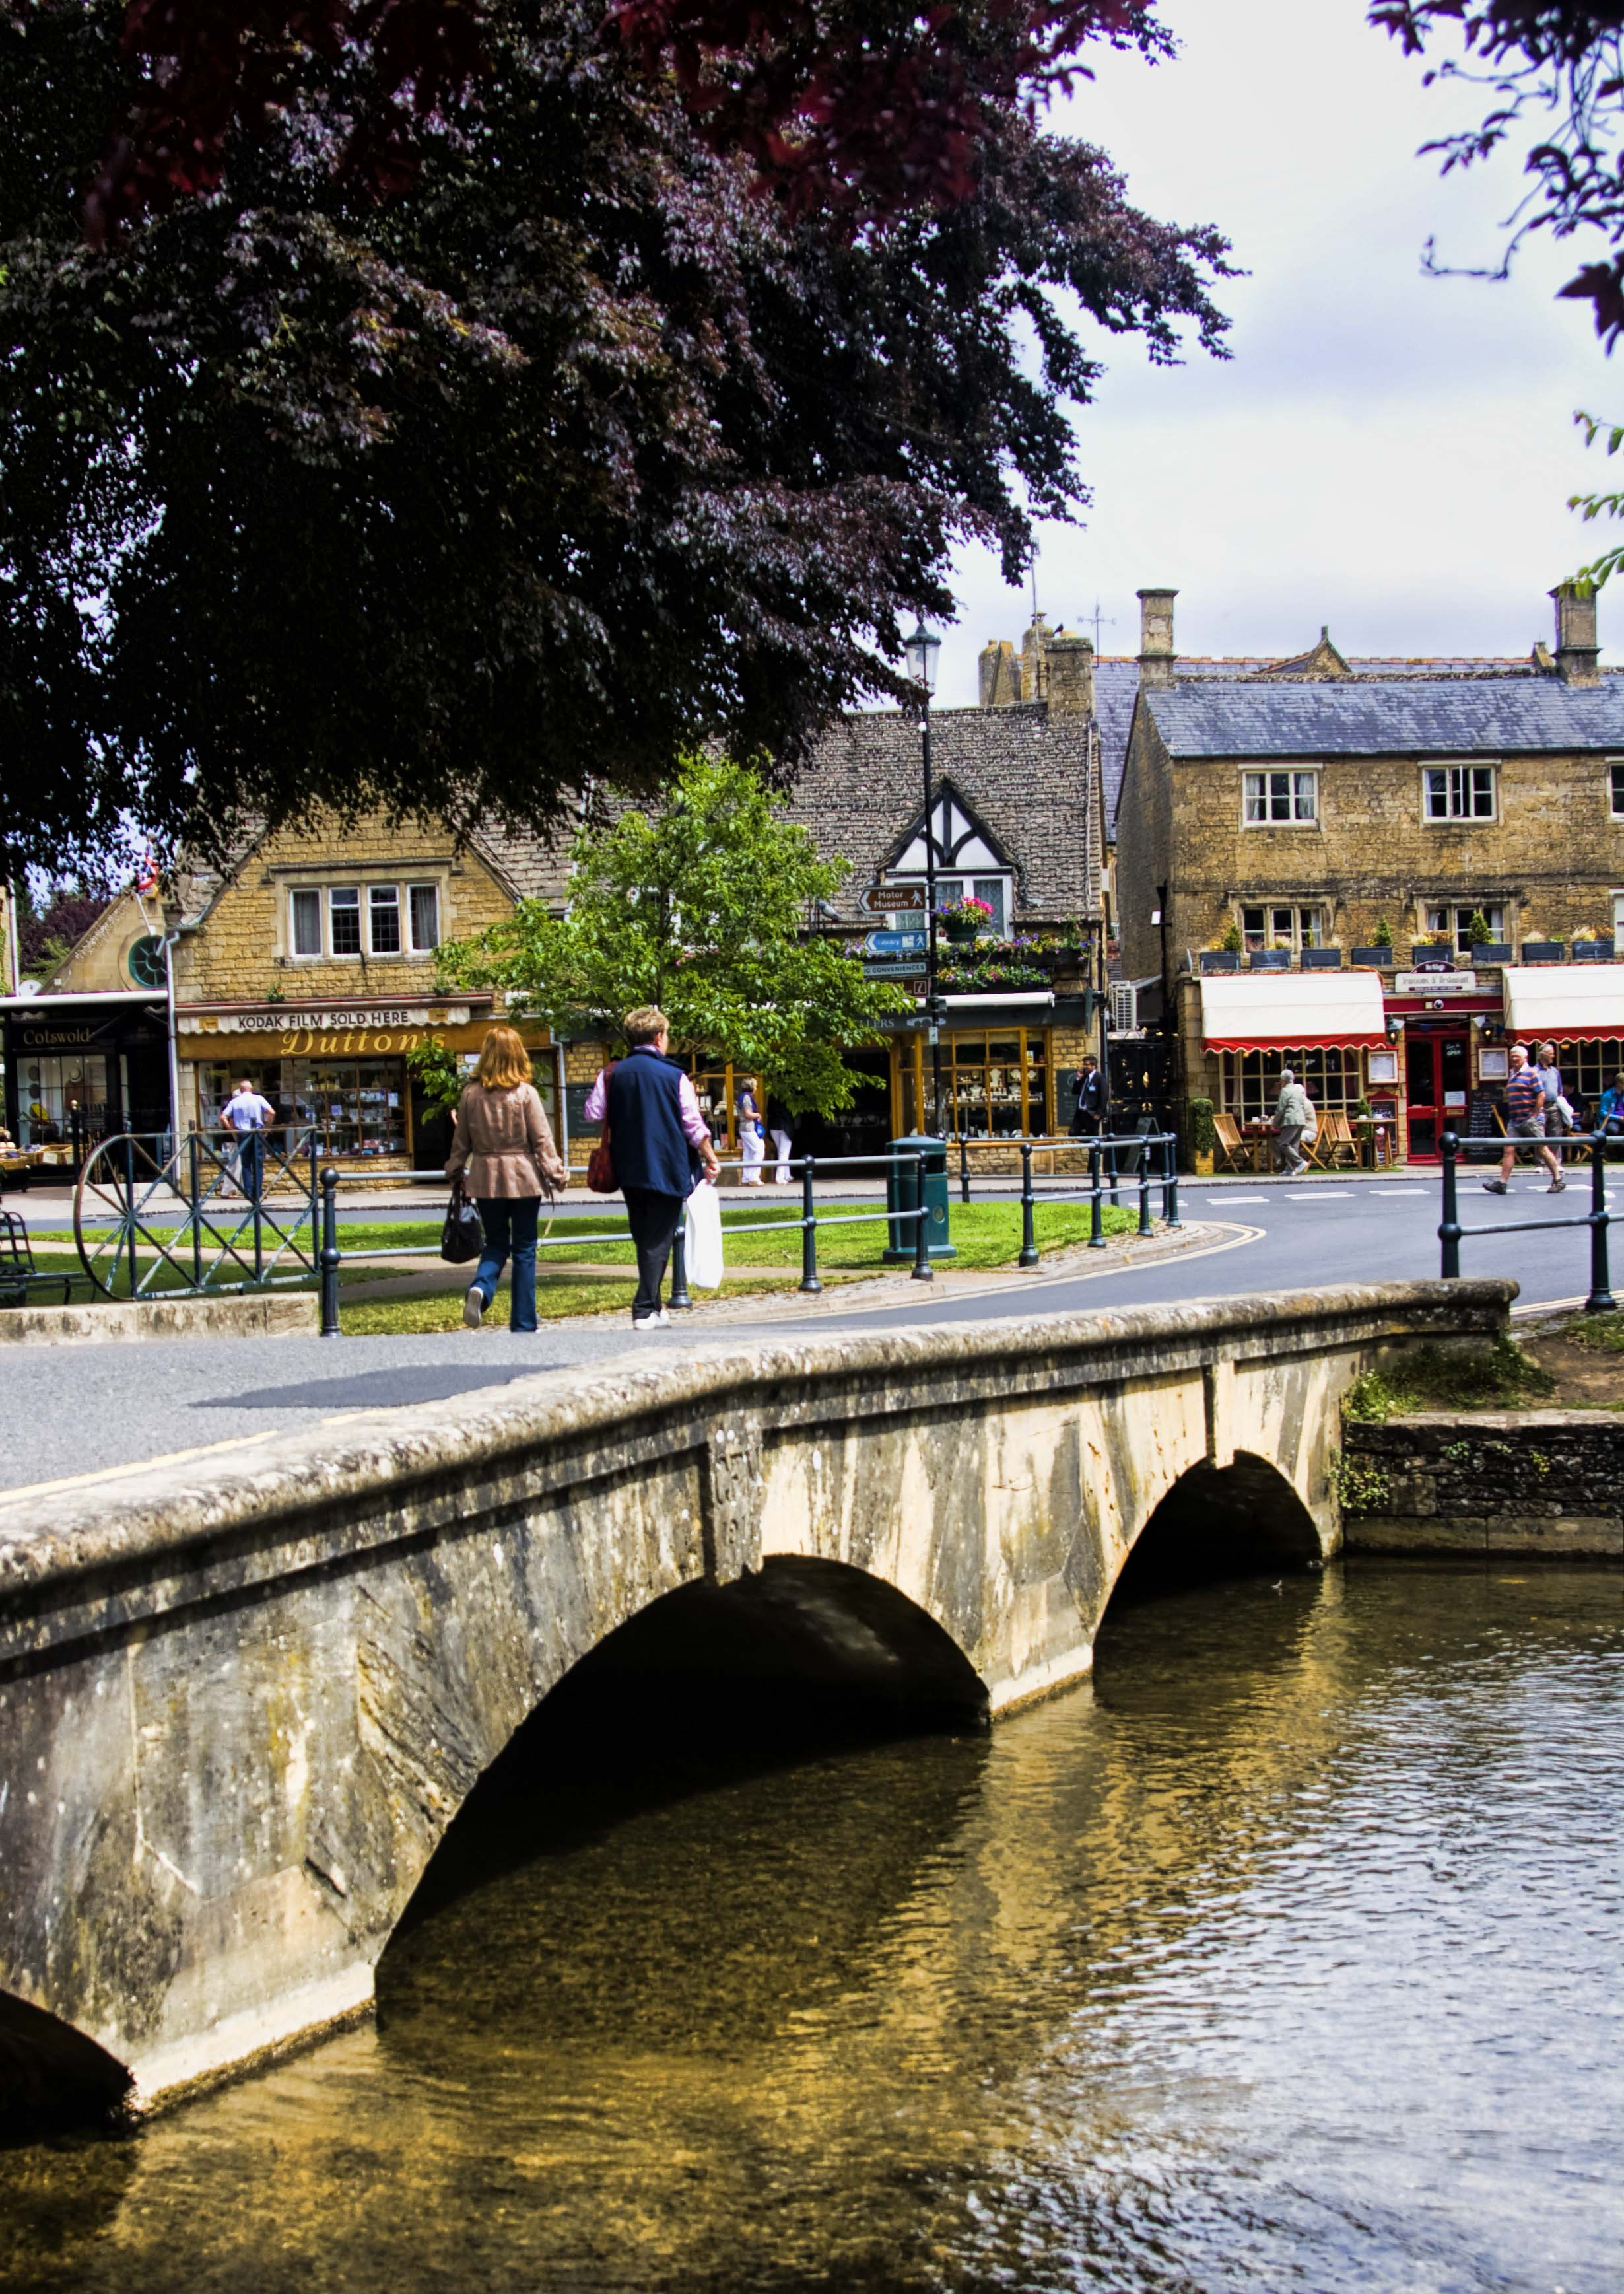 Stone bridge over the river with High Street in the back